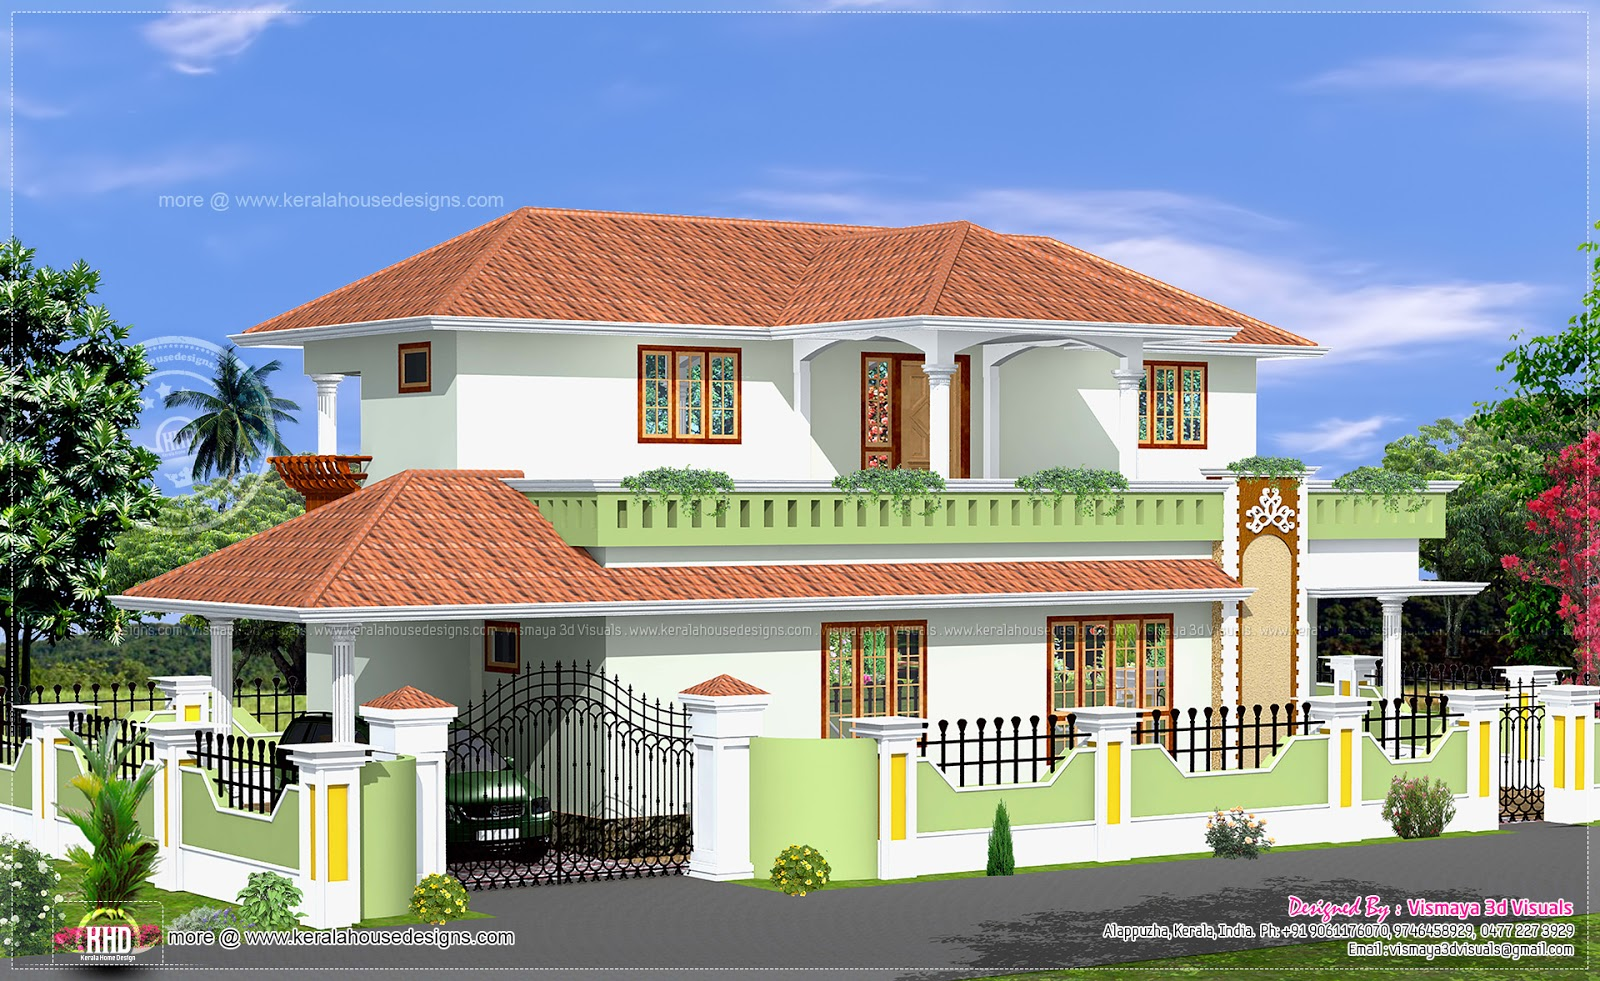 Simple house designs kerala style home design and style for Best simple house designs